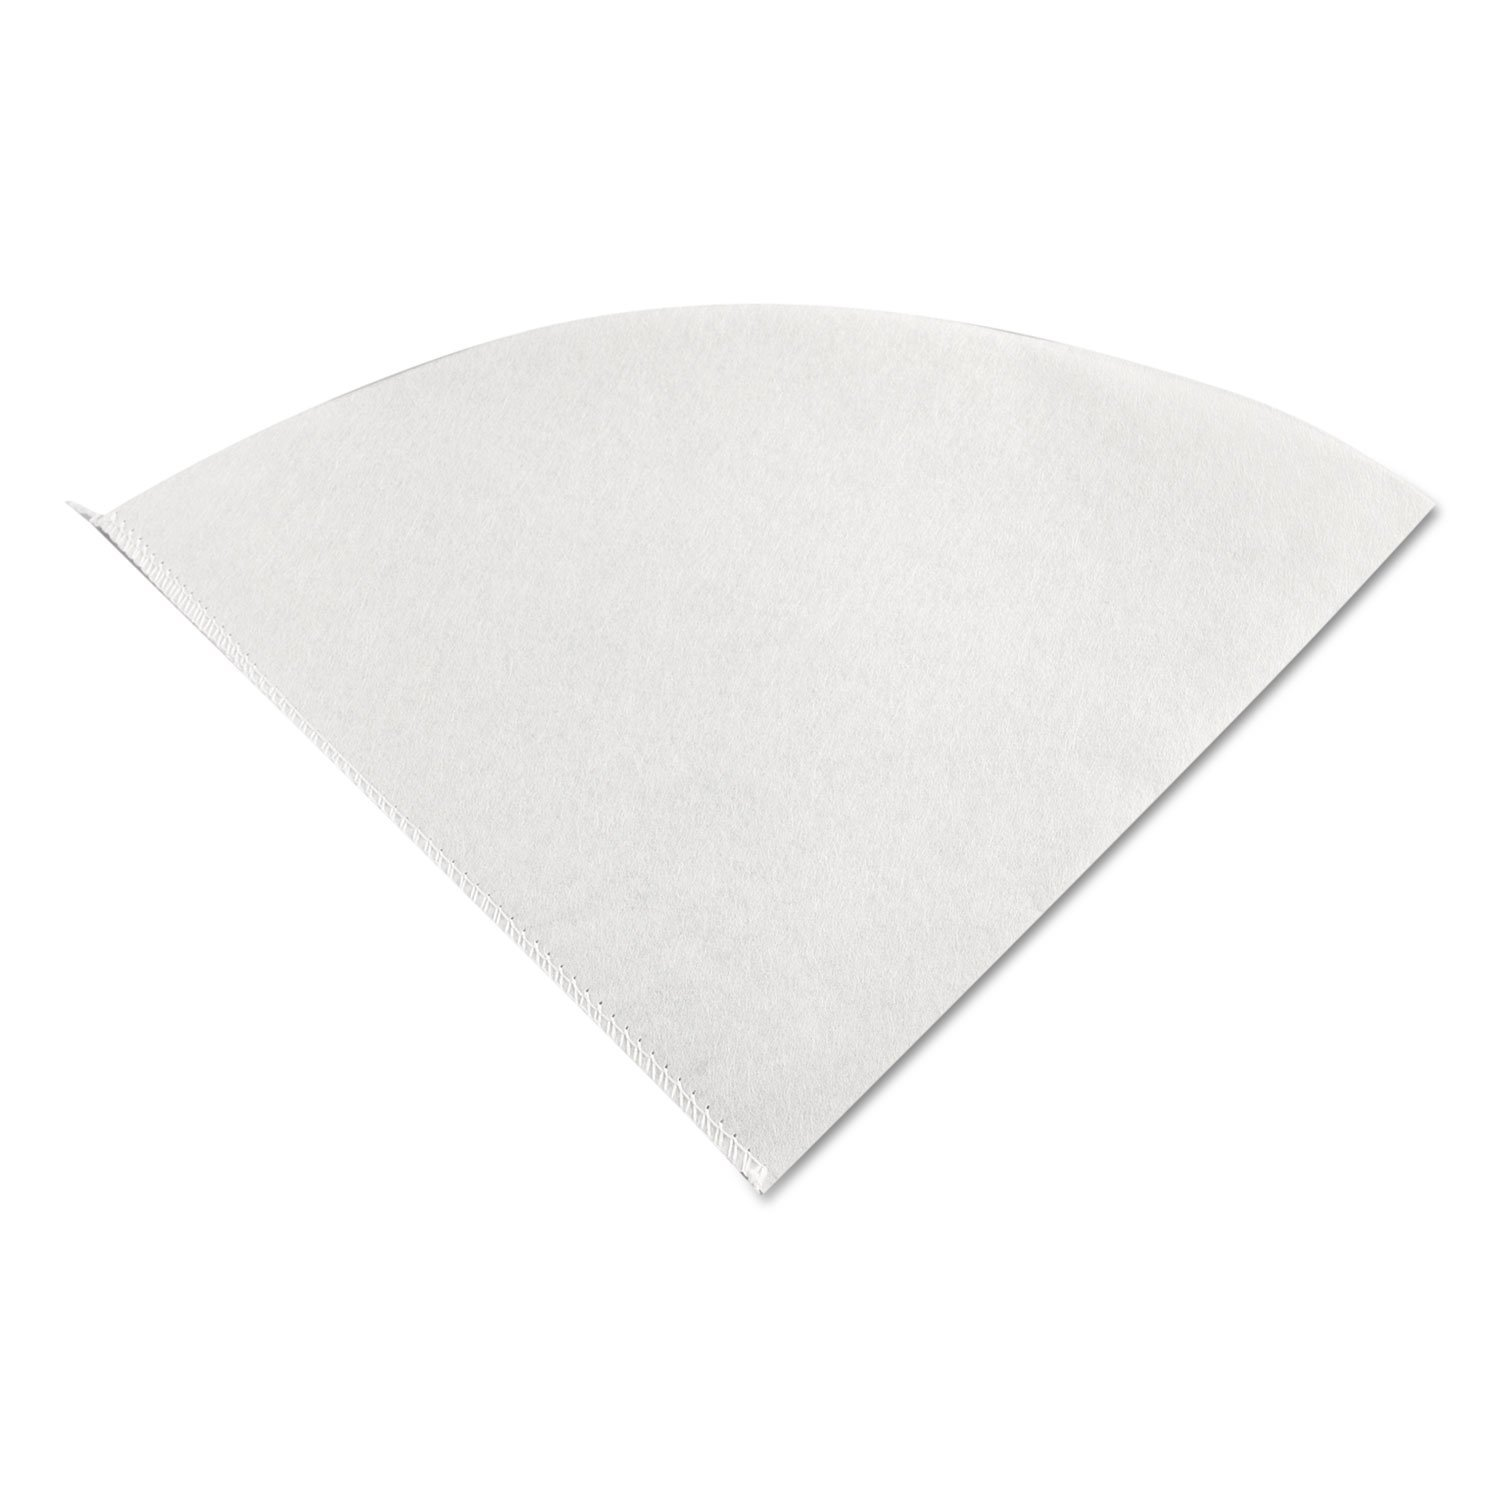 Filters for Conical Cooking Oil Filter Holder White - Contico FC-10-3